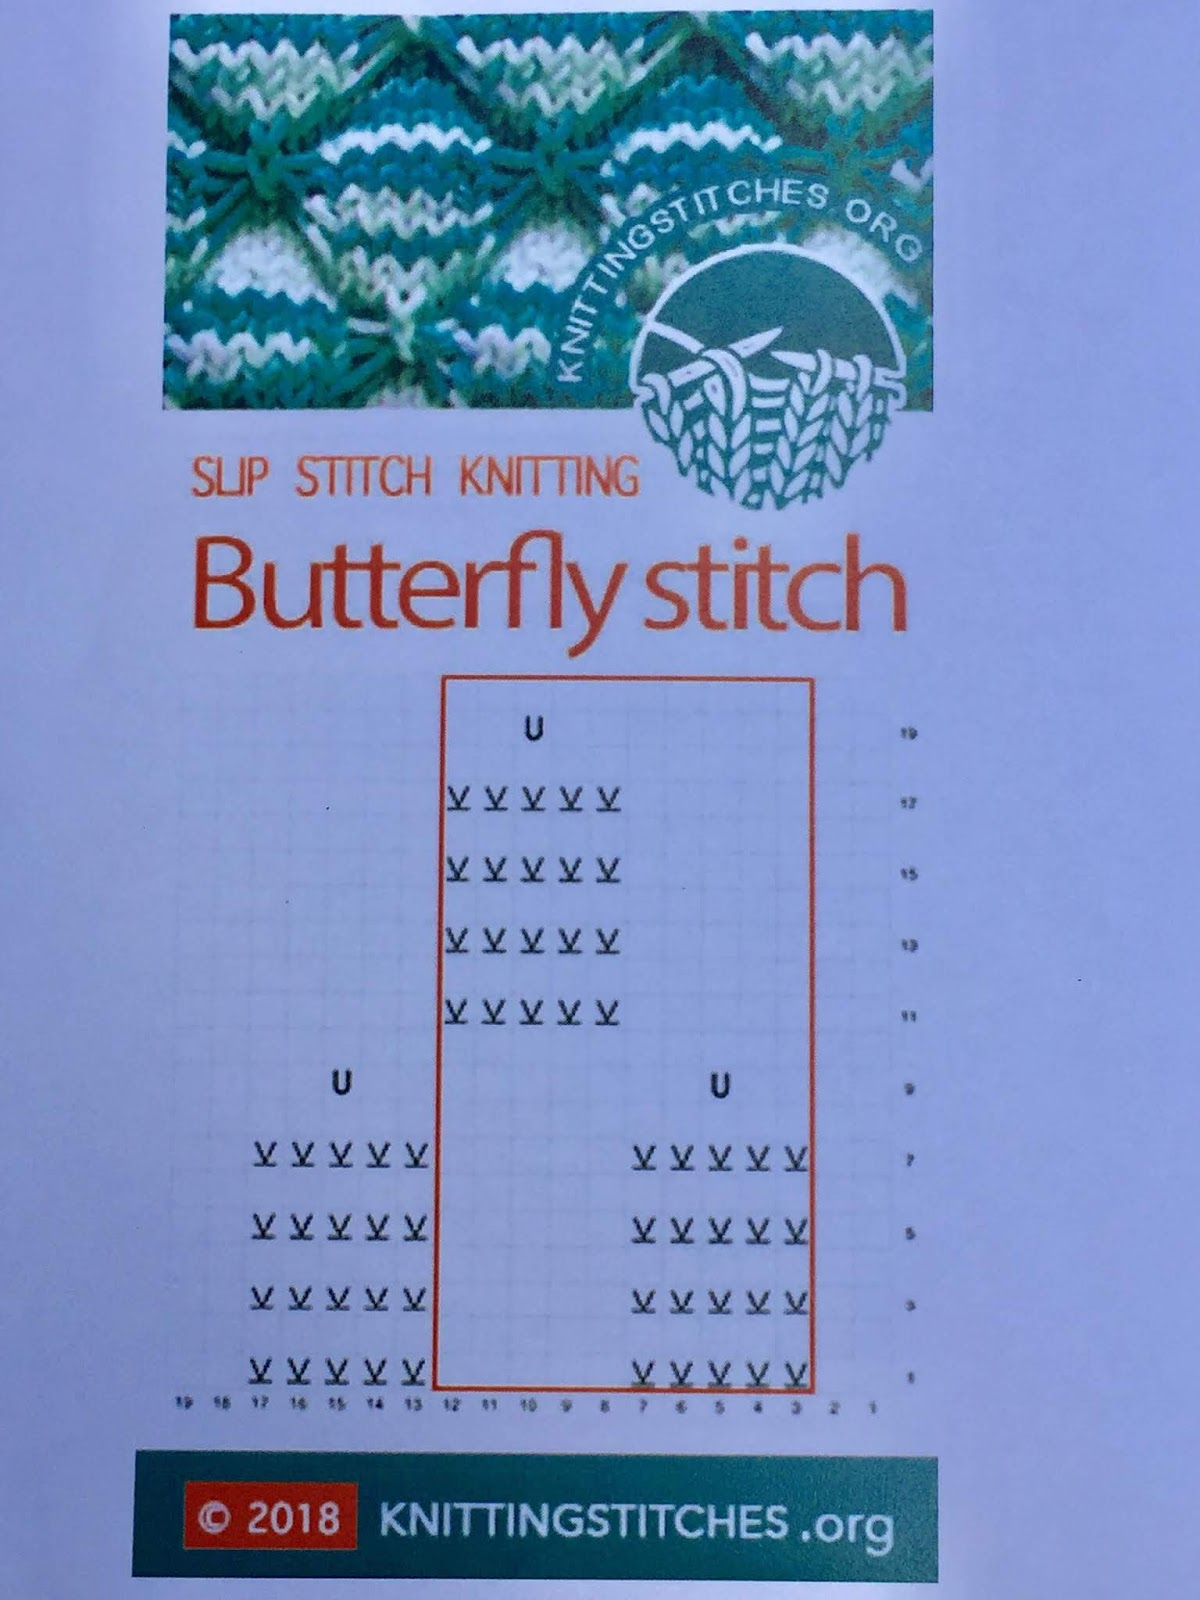 Knitting Stitches 2018 - Butterfly pattern